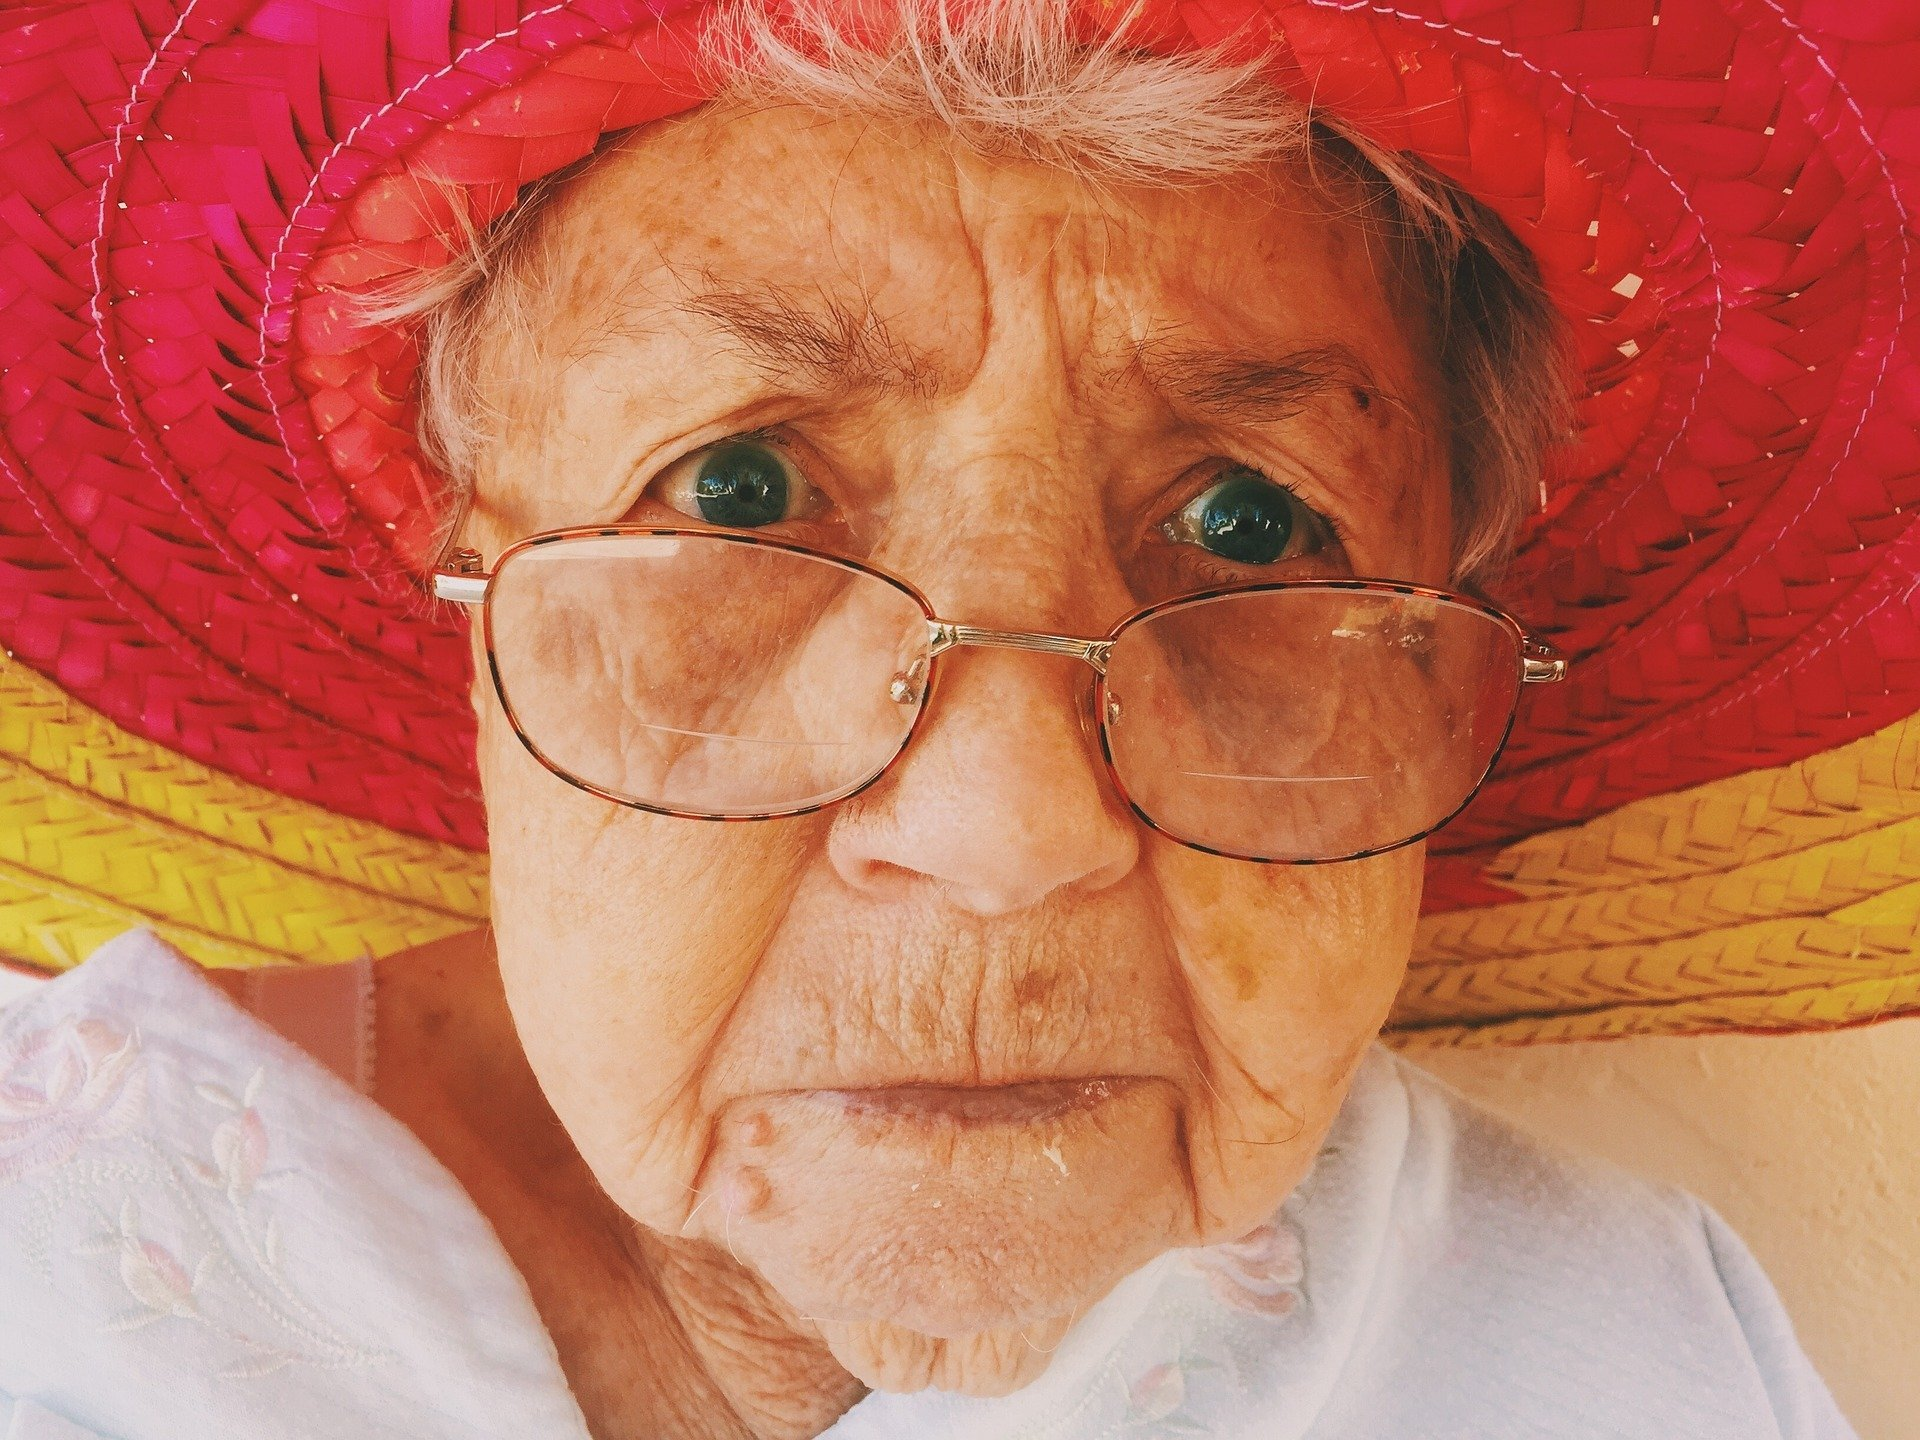 An old woman looking shocked while wearing a colorful hat and glasses | Photo: Pixabay/Free-Photos